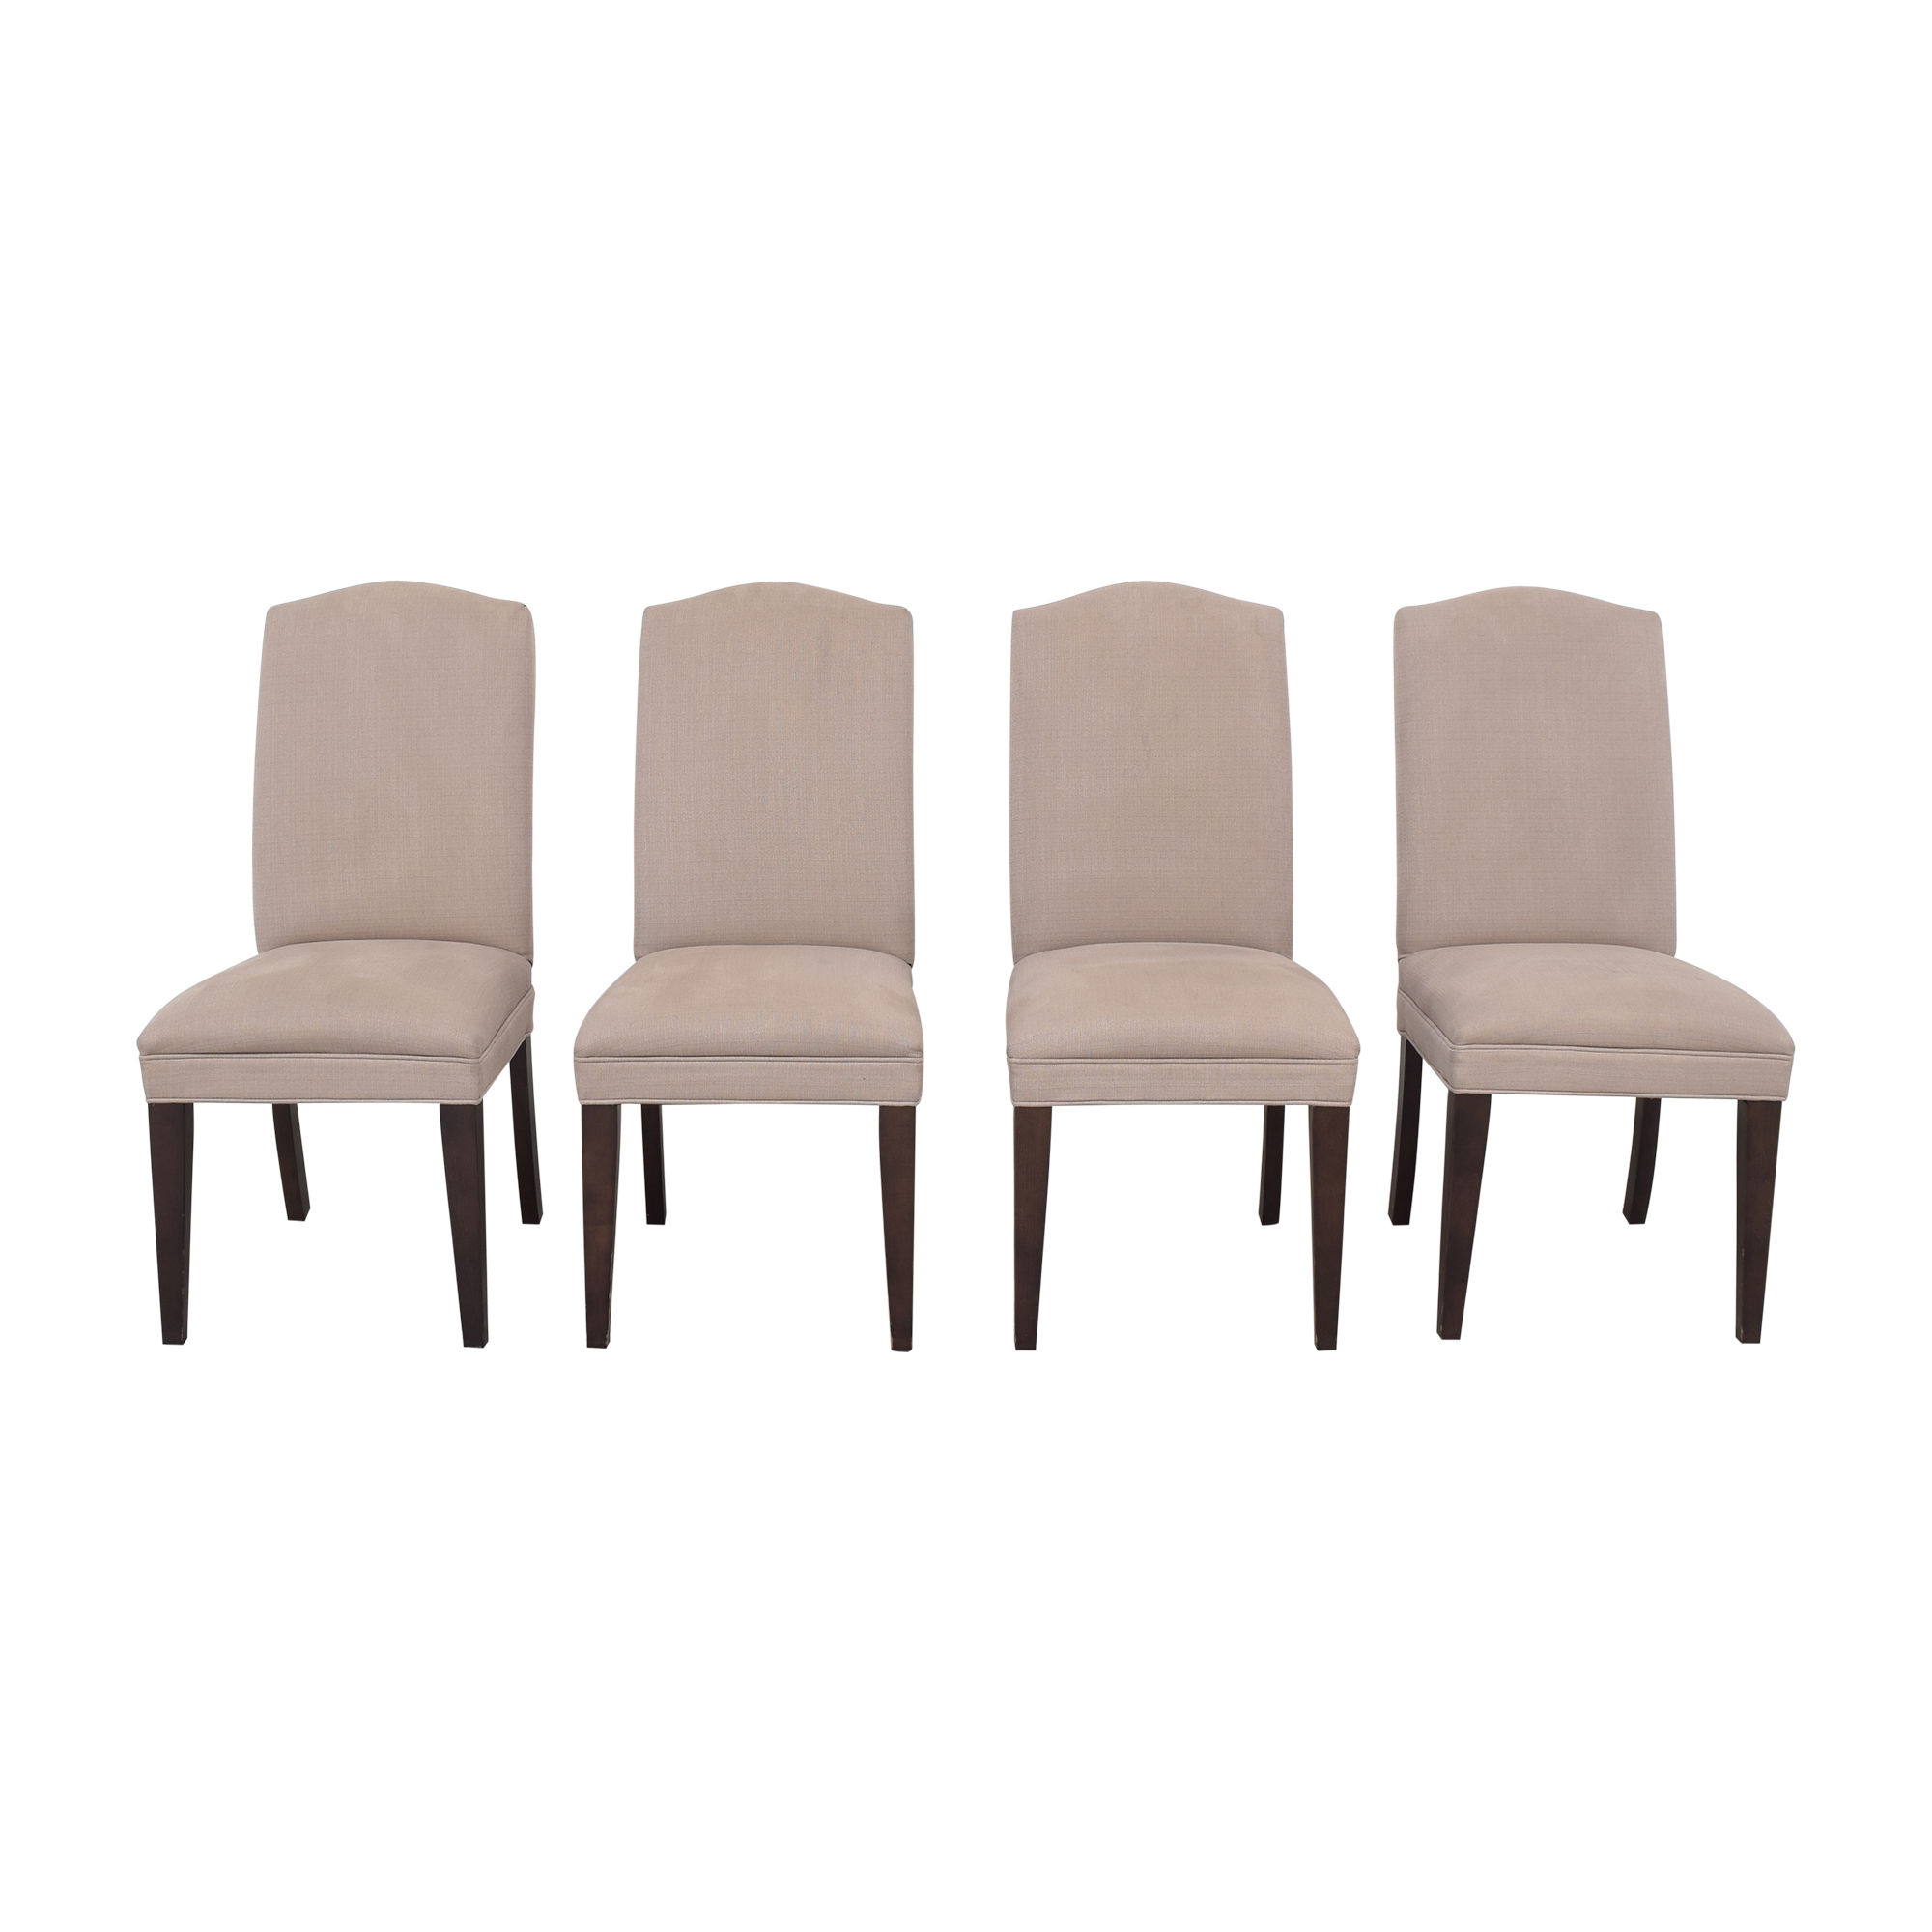 Mitchell Gold + Bob Williams Mitchell Gold + Bob Williams Graham Side Dining Chairs on sale